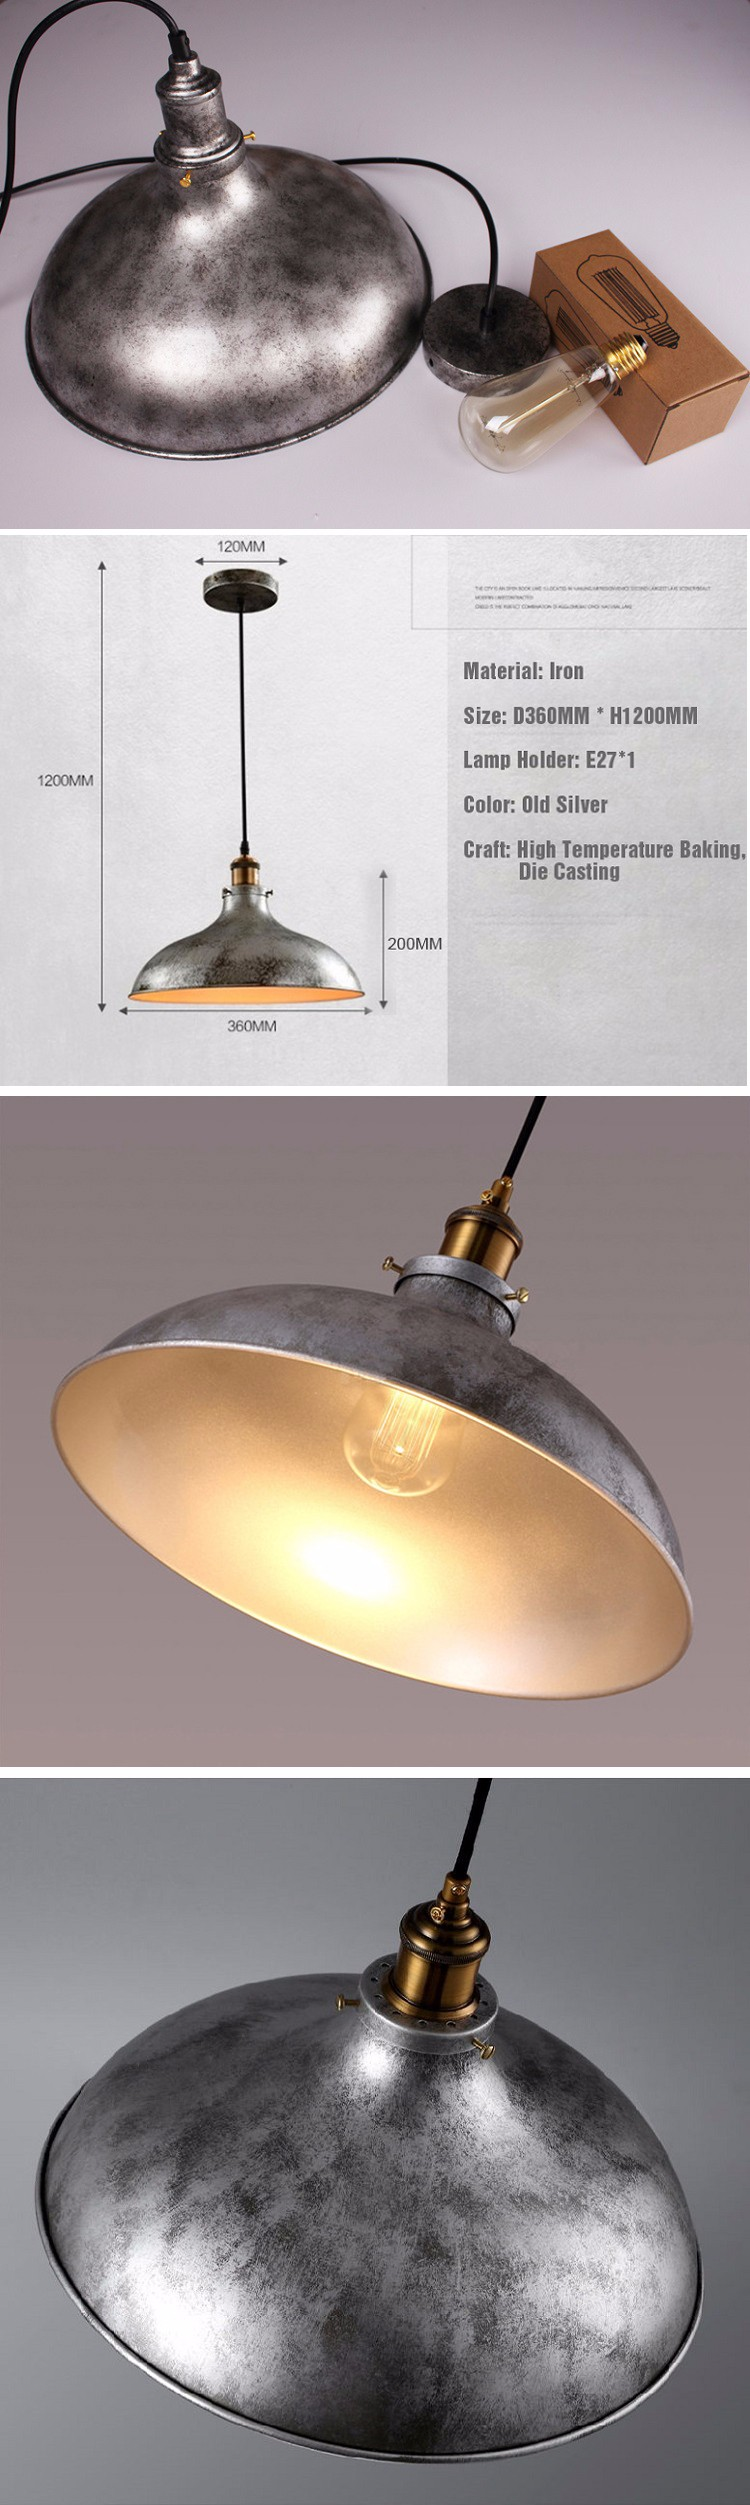 old industrial lighting. UFO Shape Professional China Factory Manufacture Industrial Lighting Vintage Hanging Lamp Chandelier Old